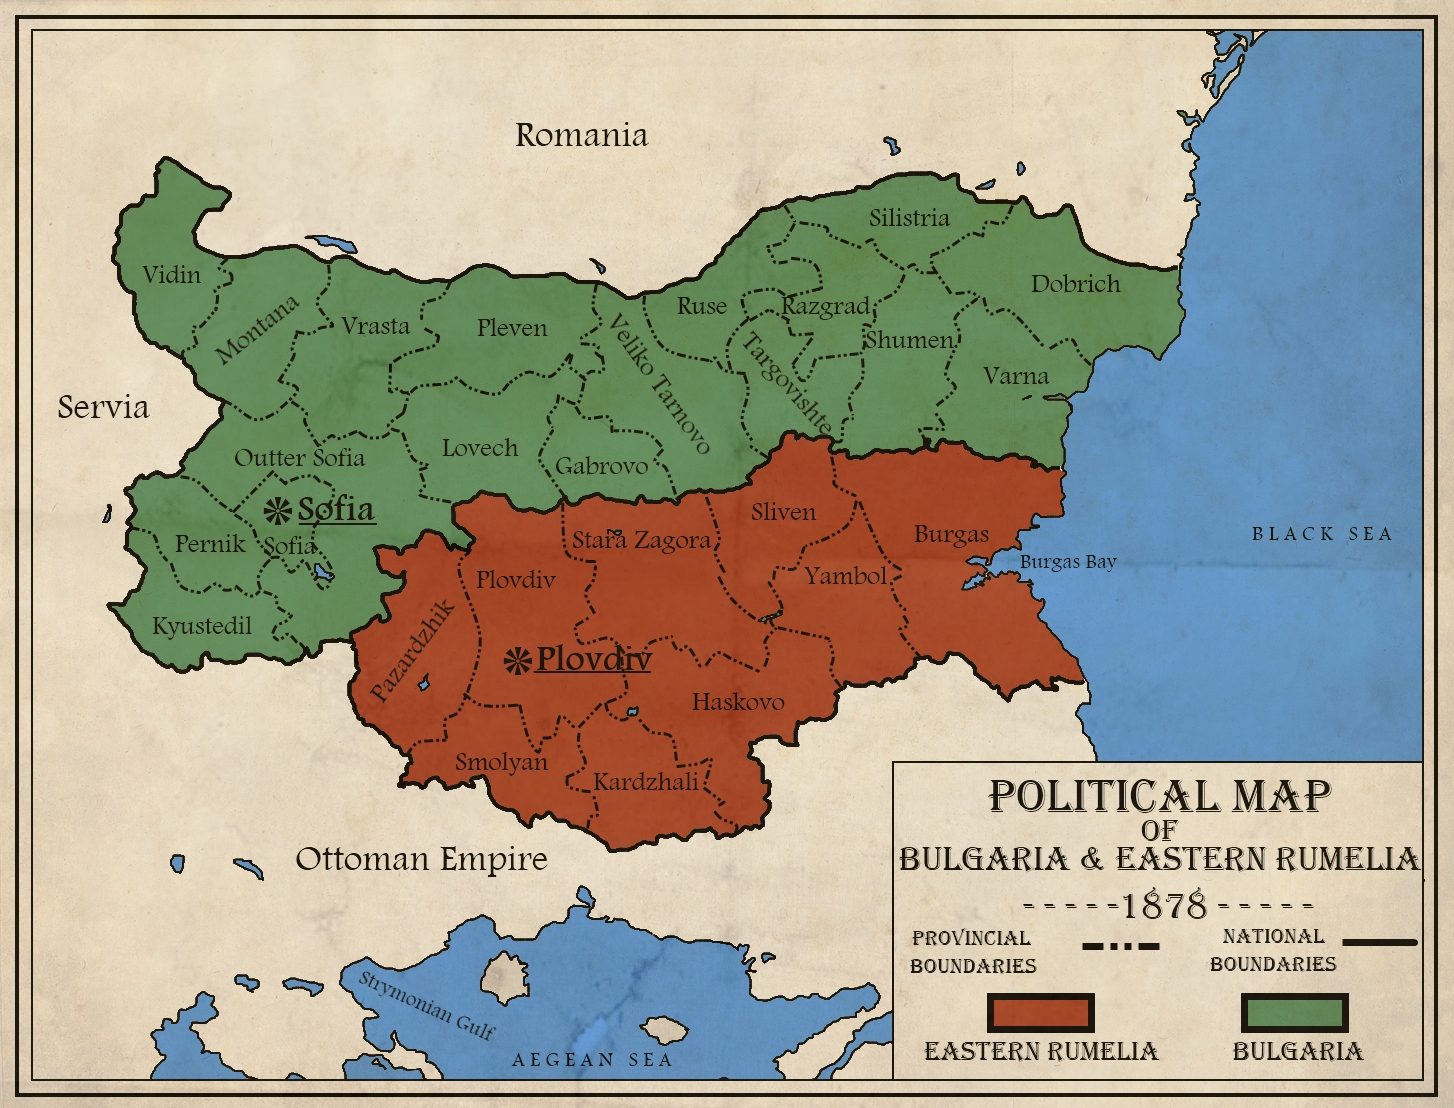 01 bulgaria and eastern rumelia 1878.jpg